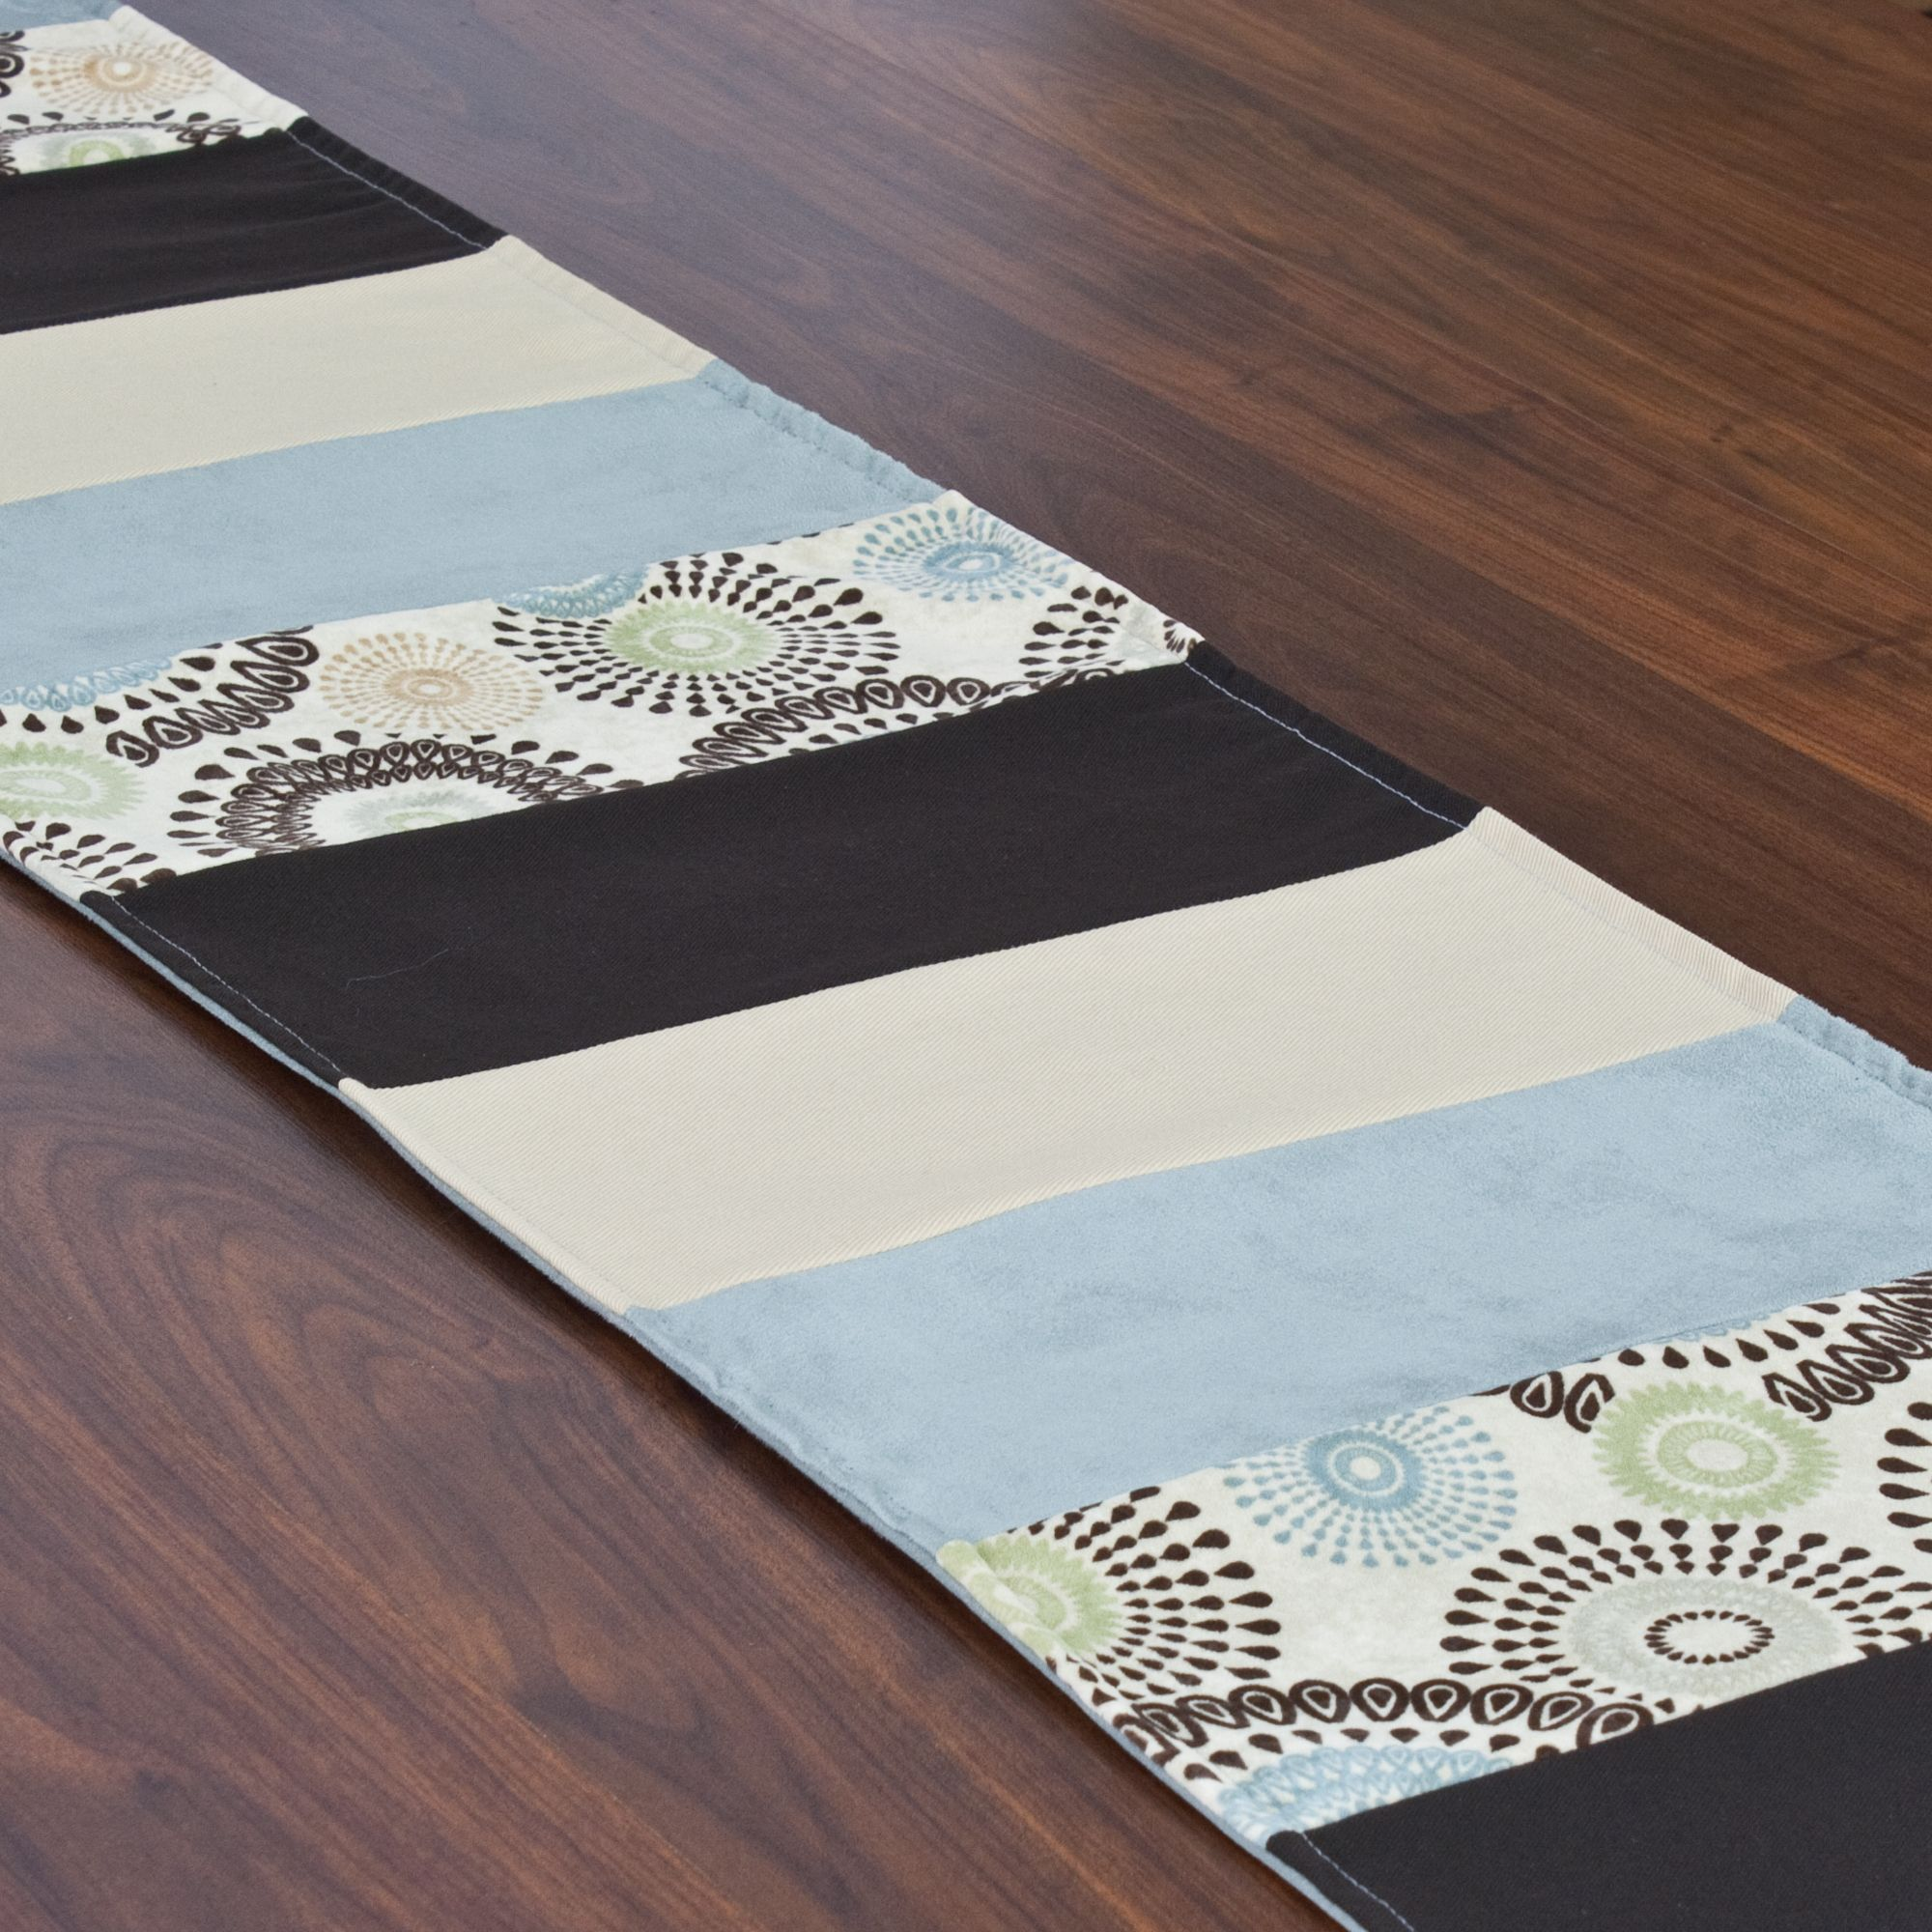 Raja Spa 12.5 x 71-inch Pieced Table Runner | Overstock.com Shopping - The Best Deals on Table Linens